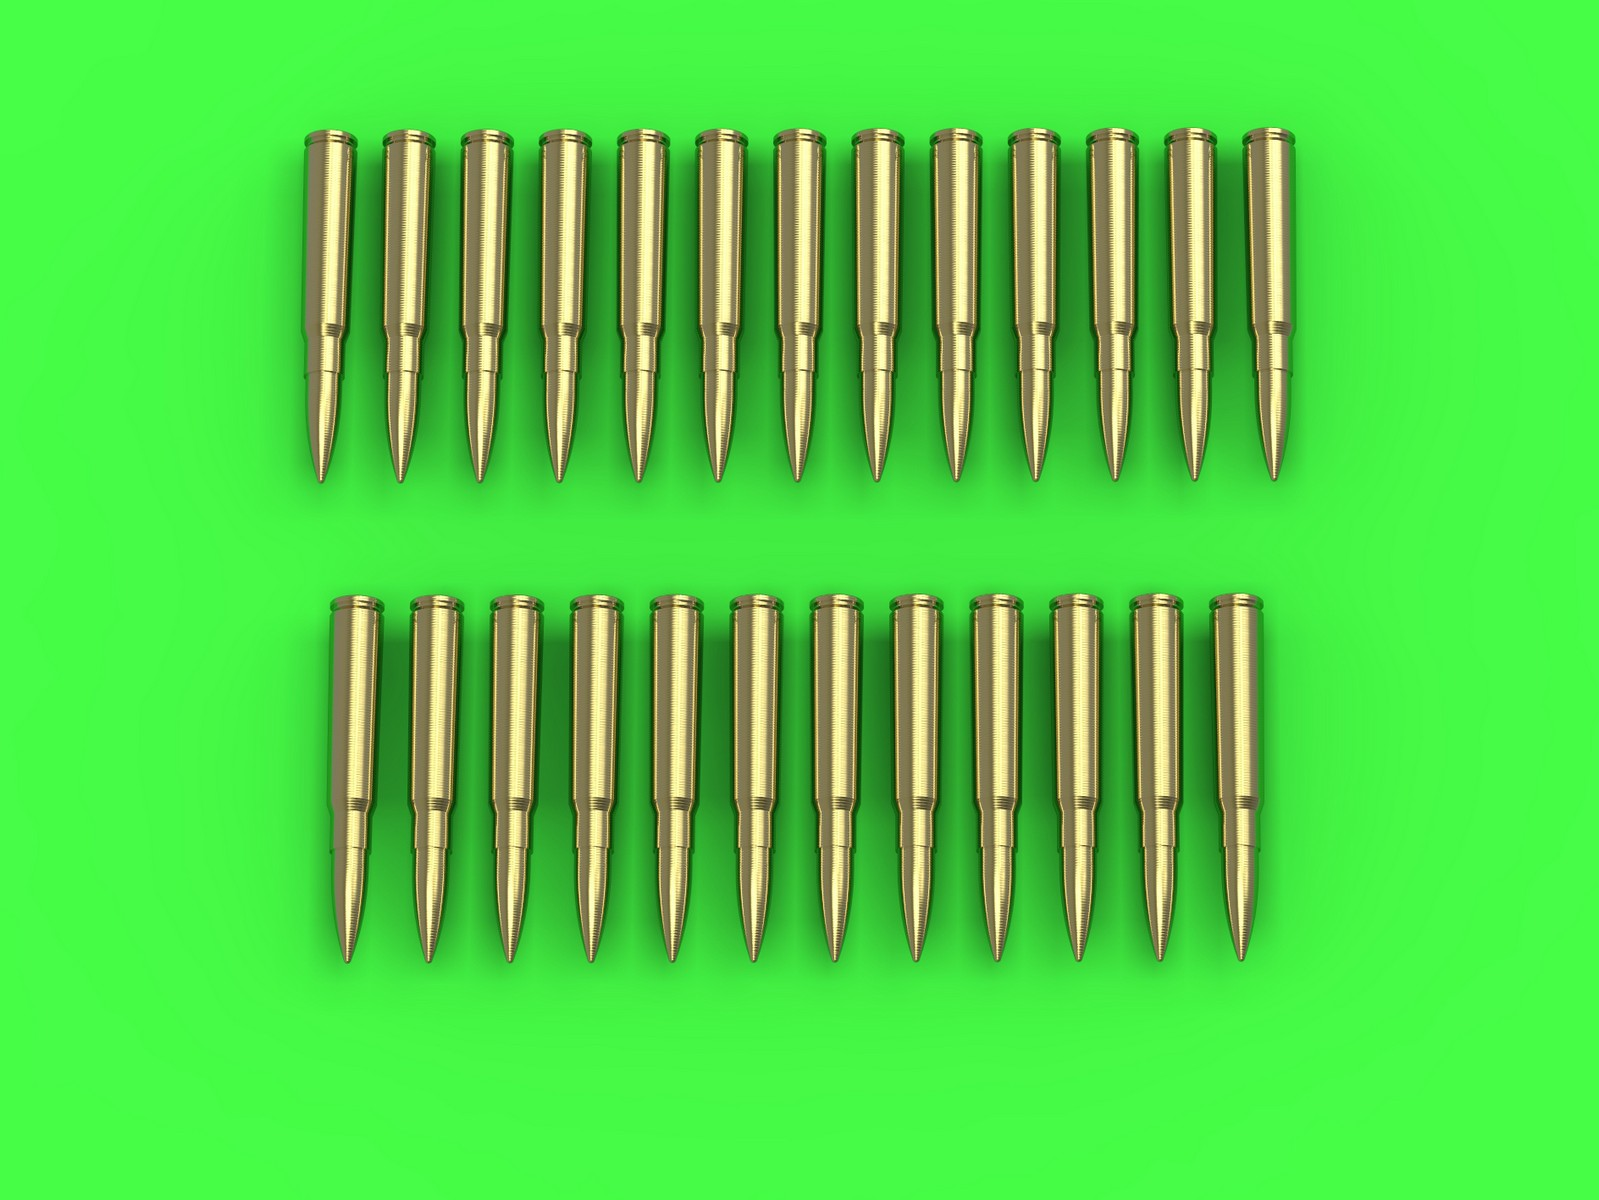 MASTER 1:35 GM35026 MG-34/MG-42 (7.92mm) - cartridges (25pcs)